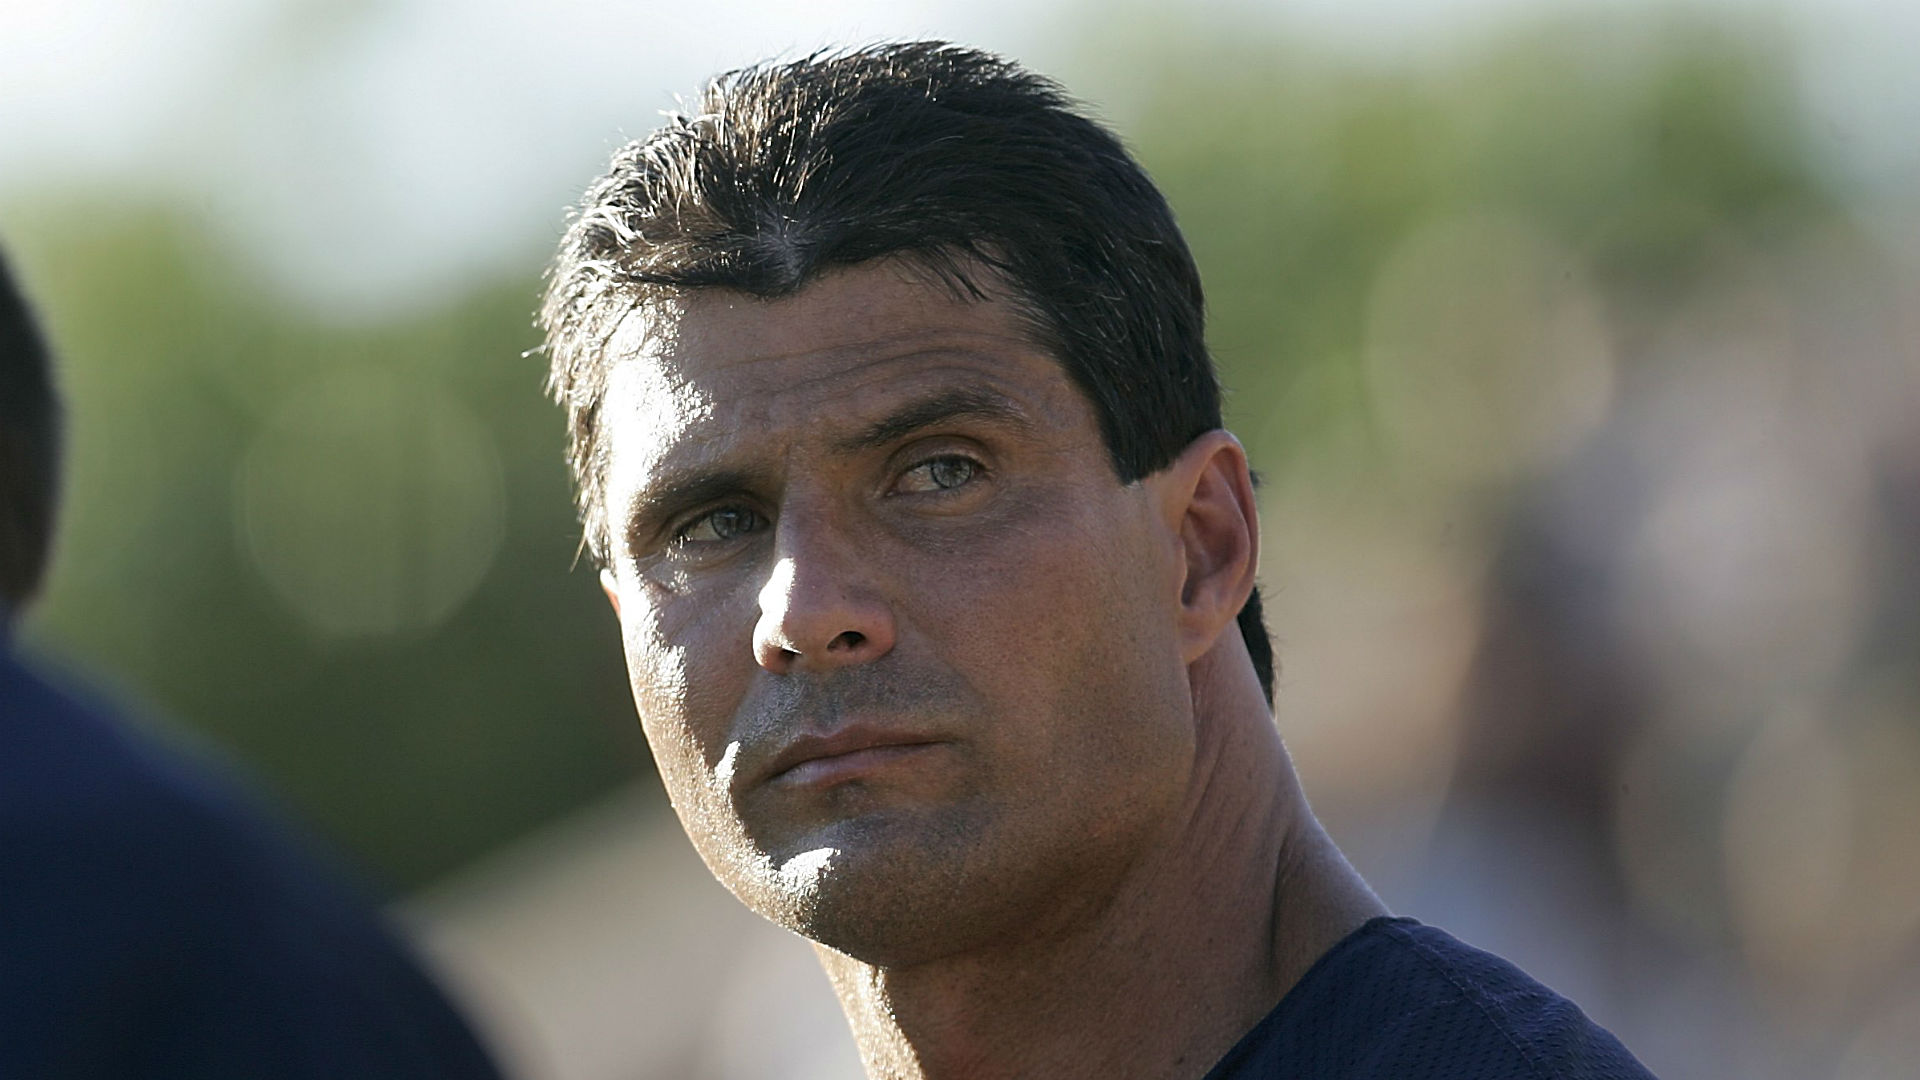 Jose Canseco goes down easily 10 seconds into Barstool PPV fight